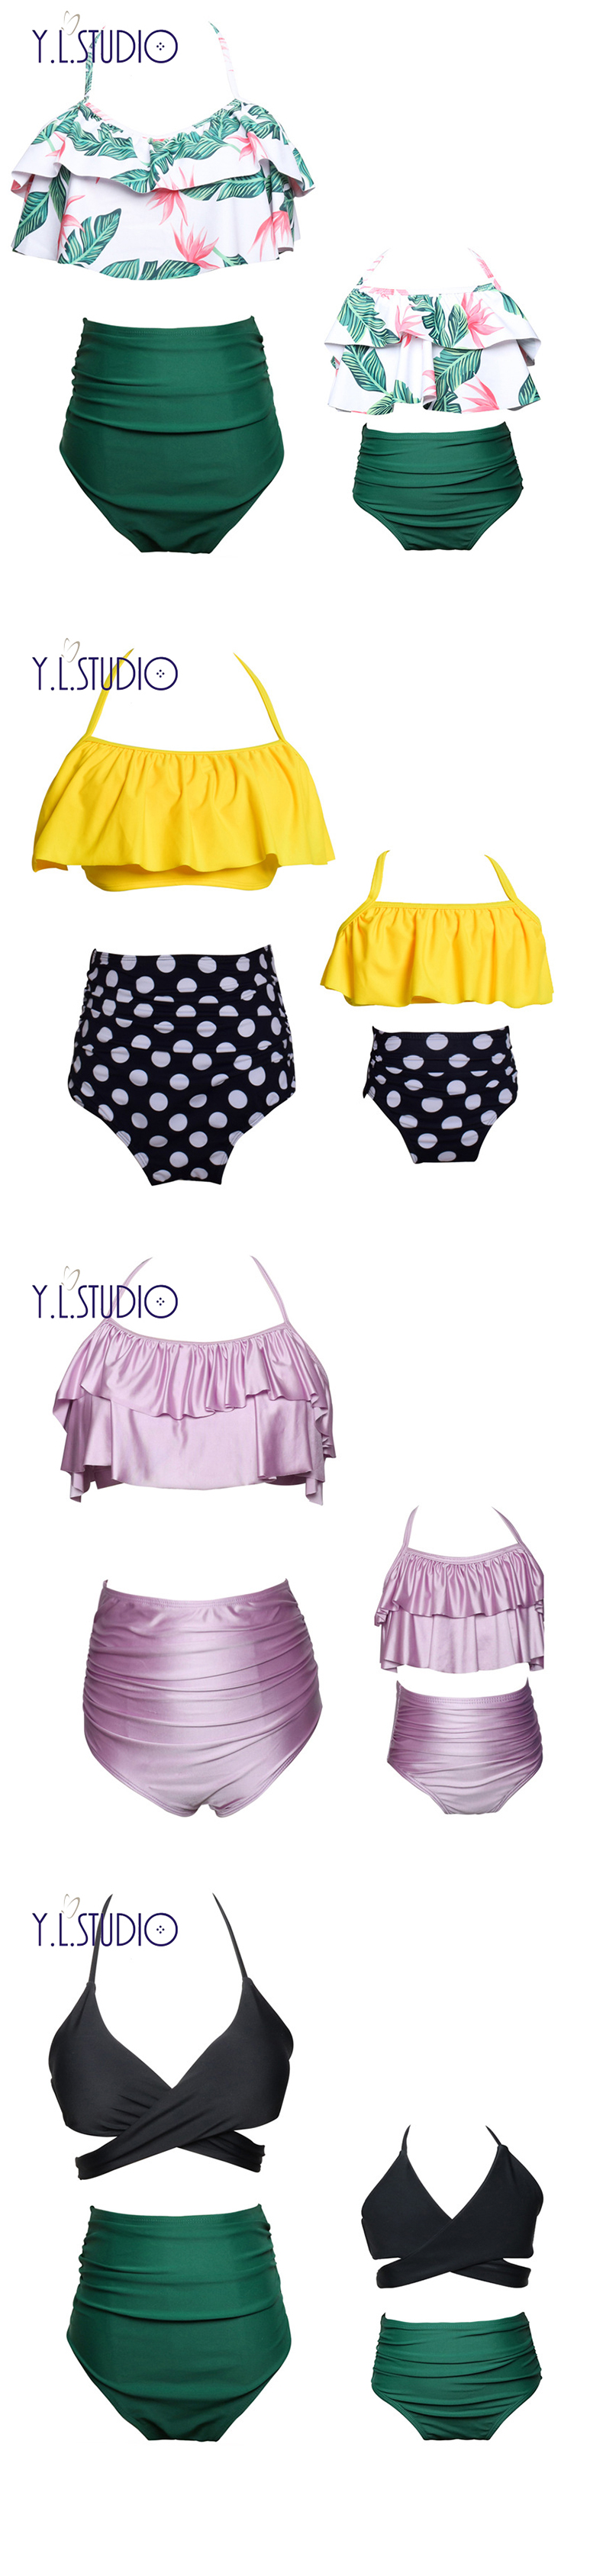 HTB16AENjf6TBKNjSZJiq6zKVFXaa Mother and Daughter Swimsuit Mommy Swimwear Bikini sets Brachwear Clothes Look Mom Baby Dresses Clothing Family Matching Outfits